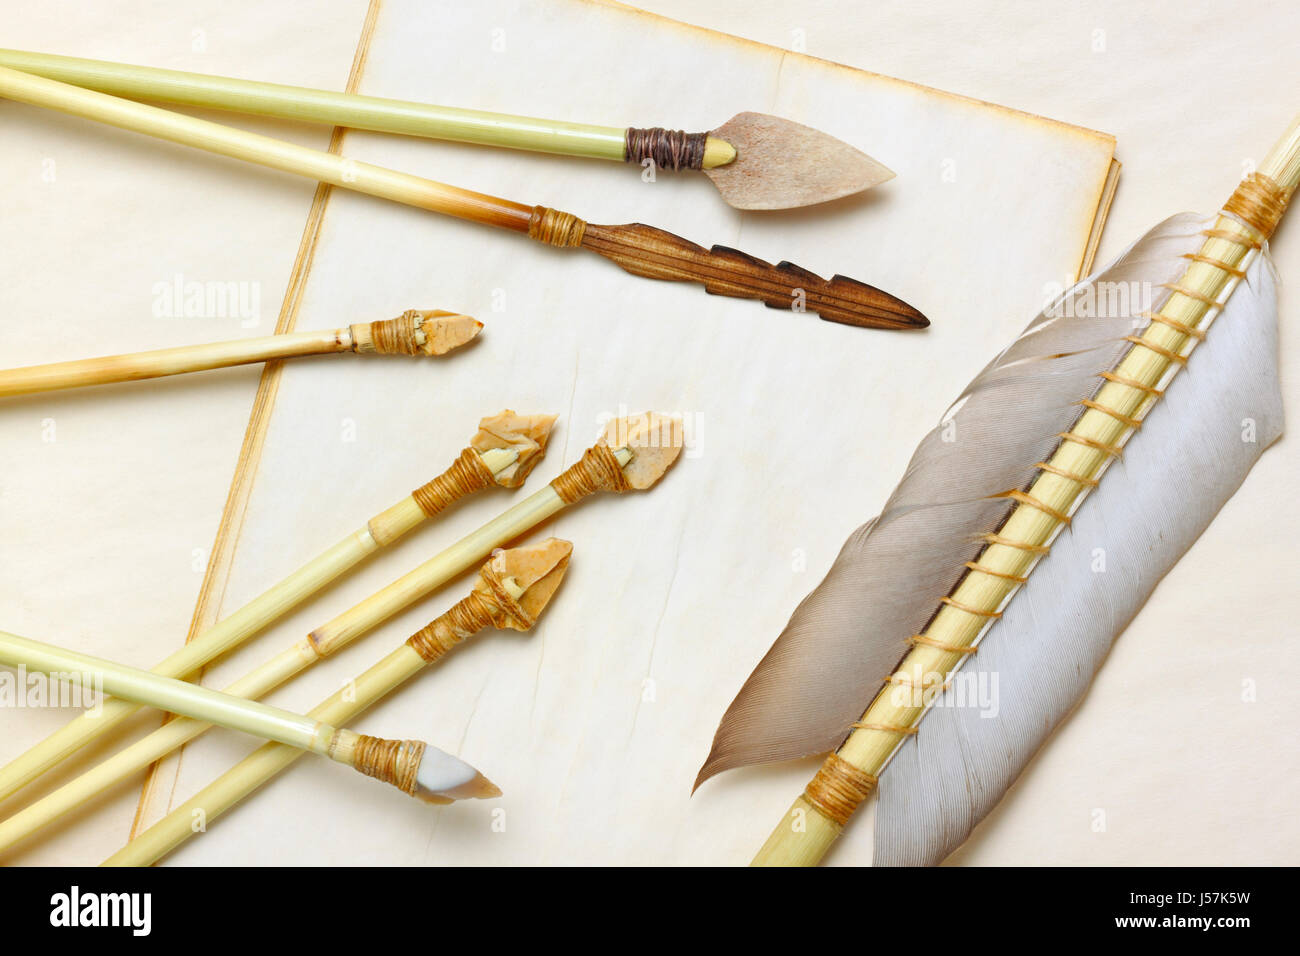 Primitive hunting and fishing arrows with flint stone, wood and bone arrowheads over aged paper sheets - Stock Image